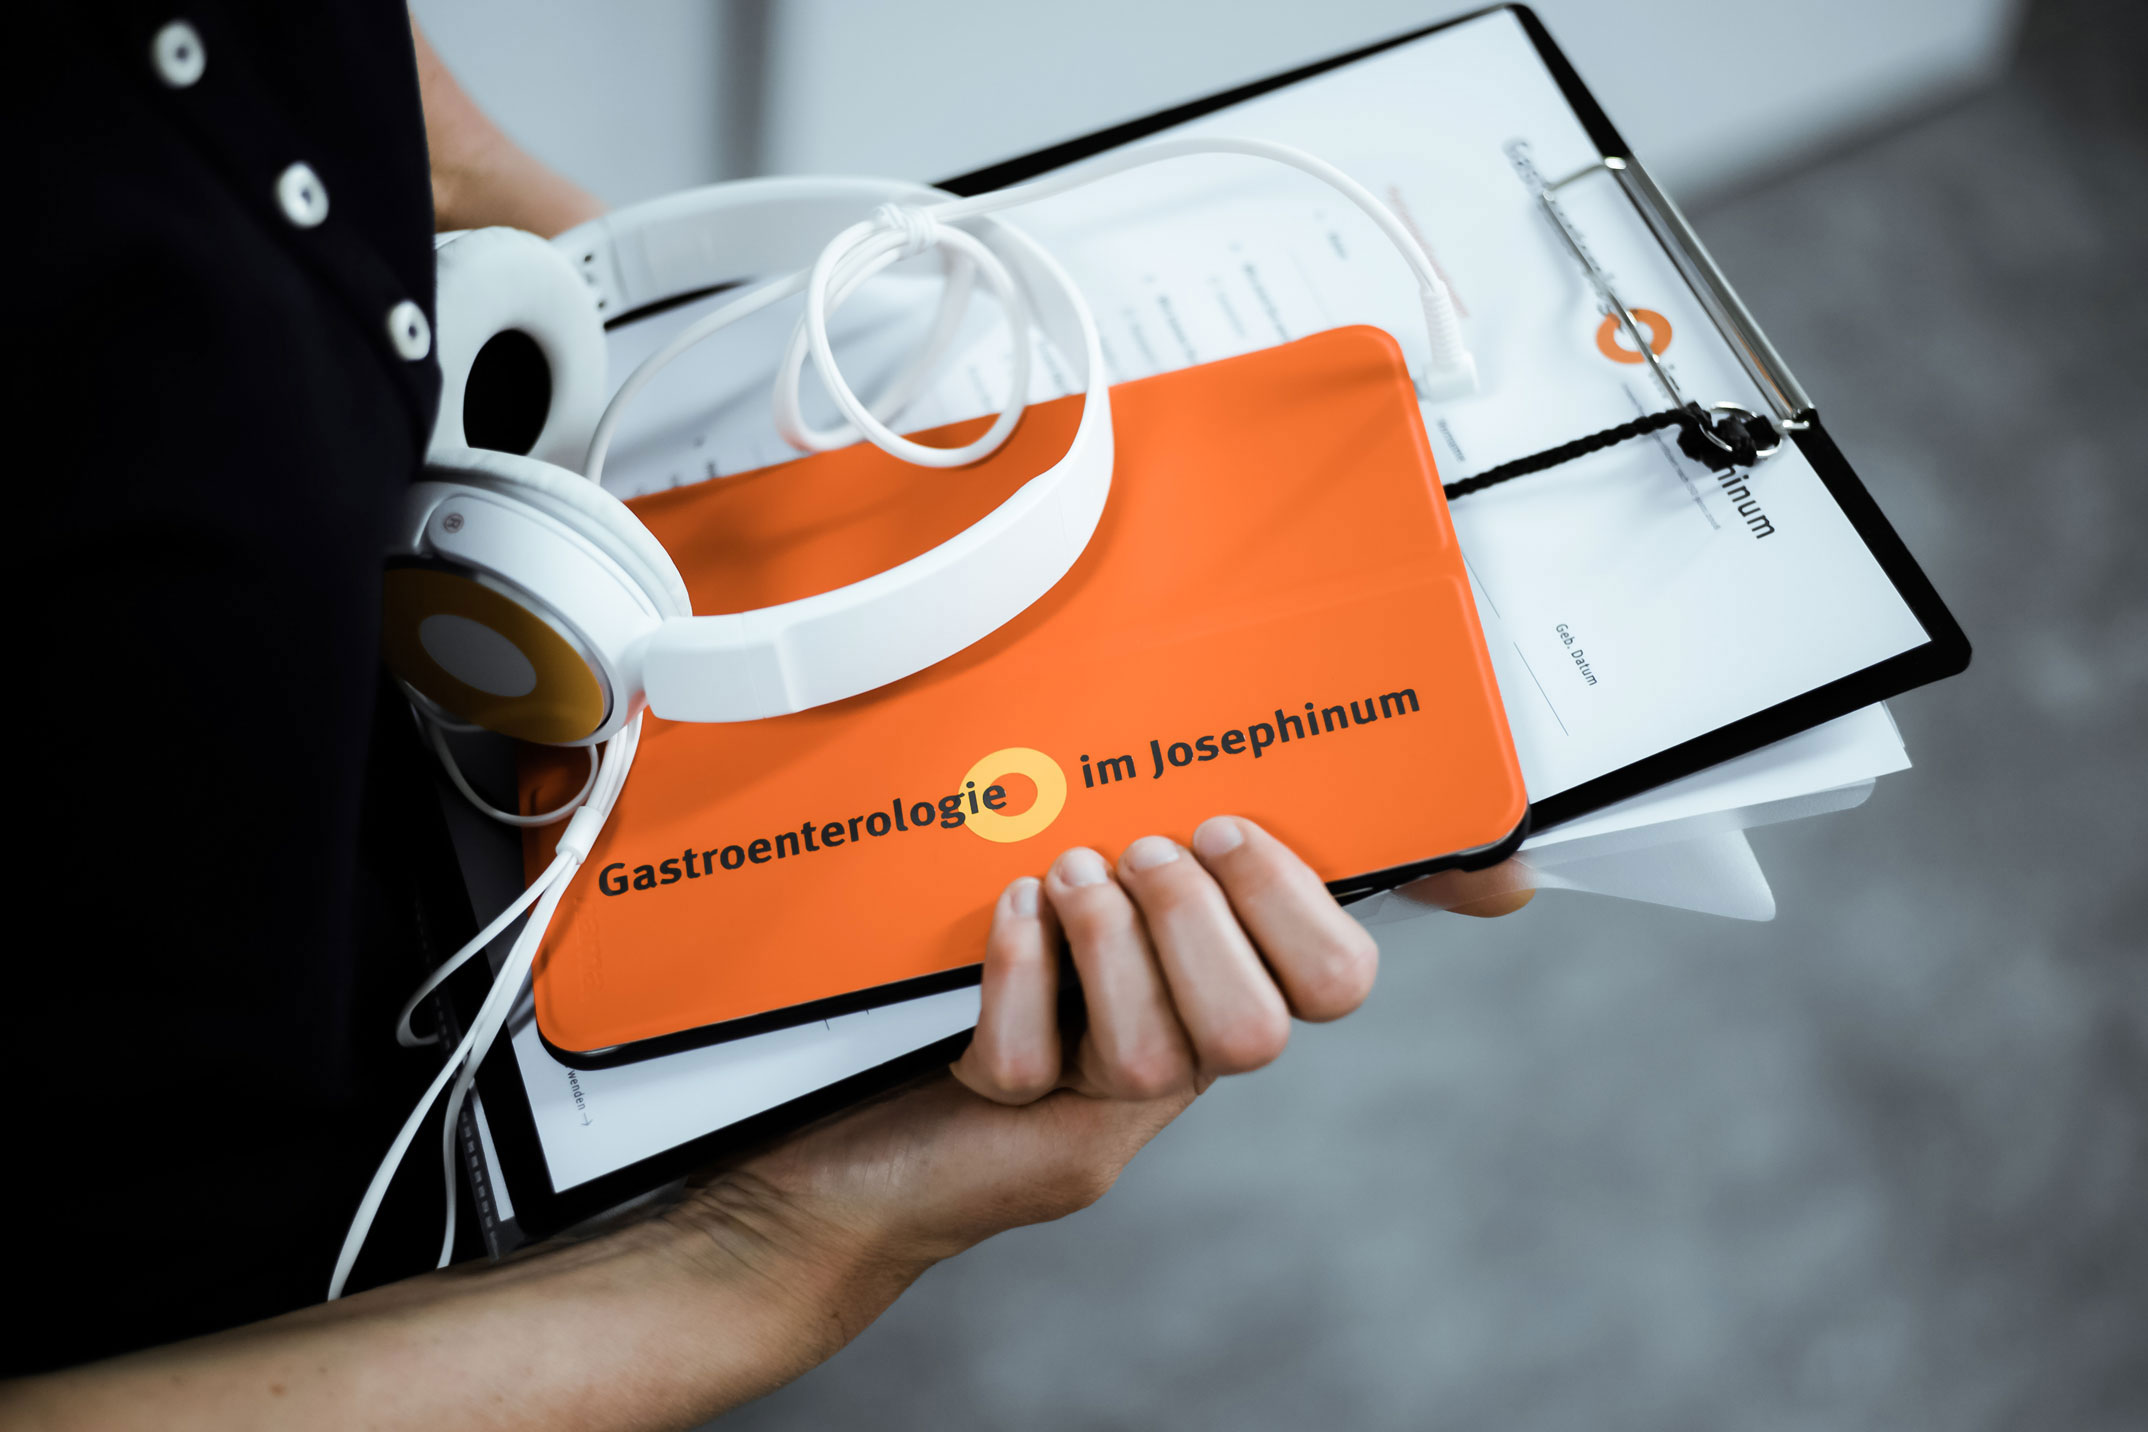 Informationsmaterialien in analoger und digitaler Form – Corporate Design Gastroenterologie im Josephinum